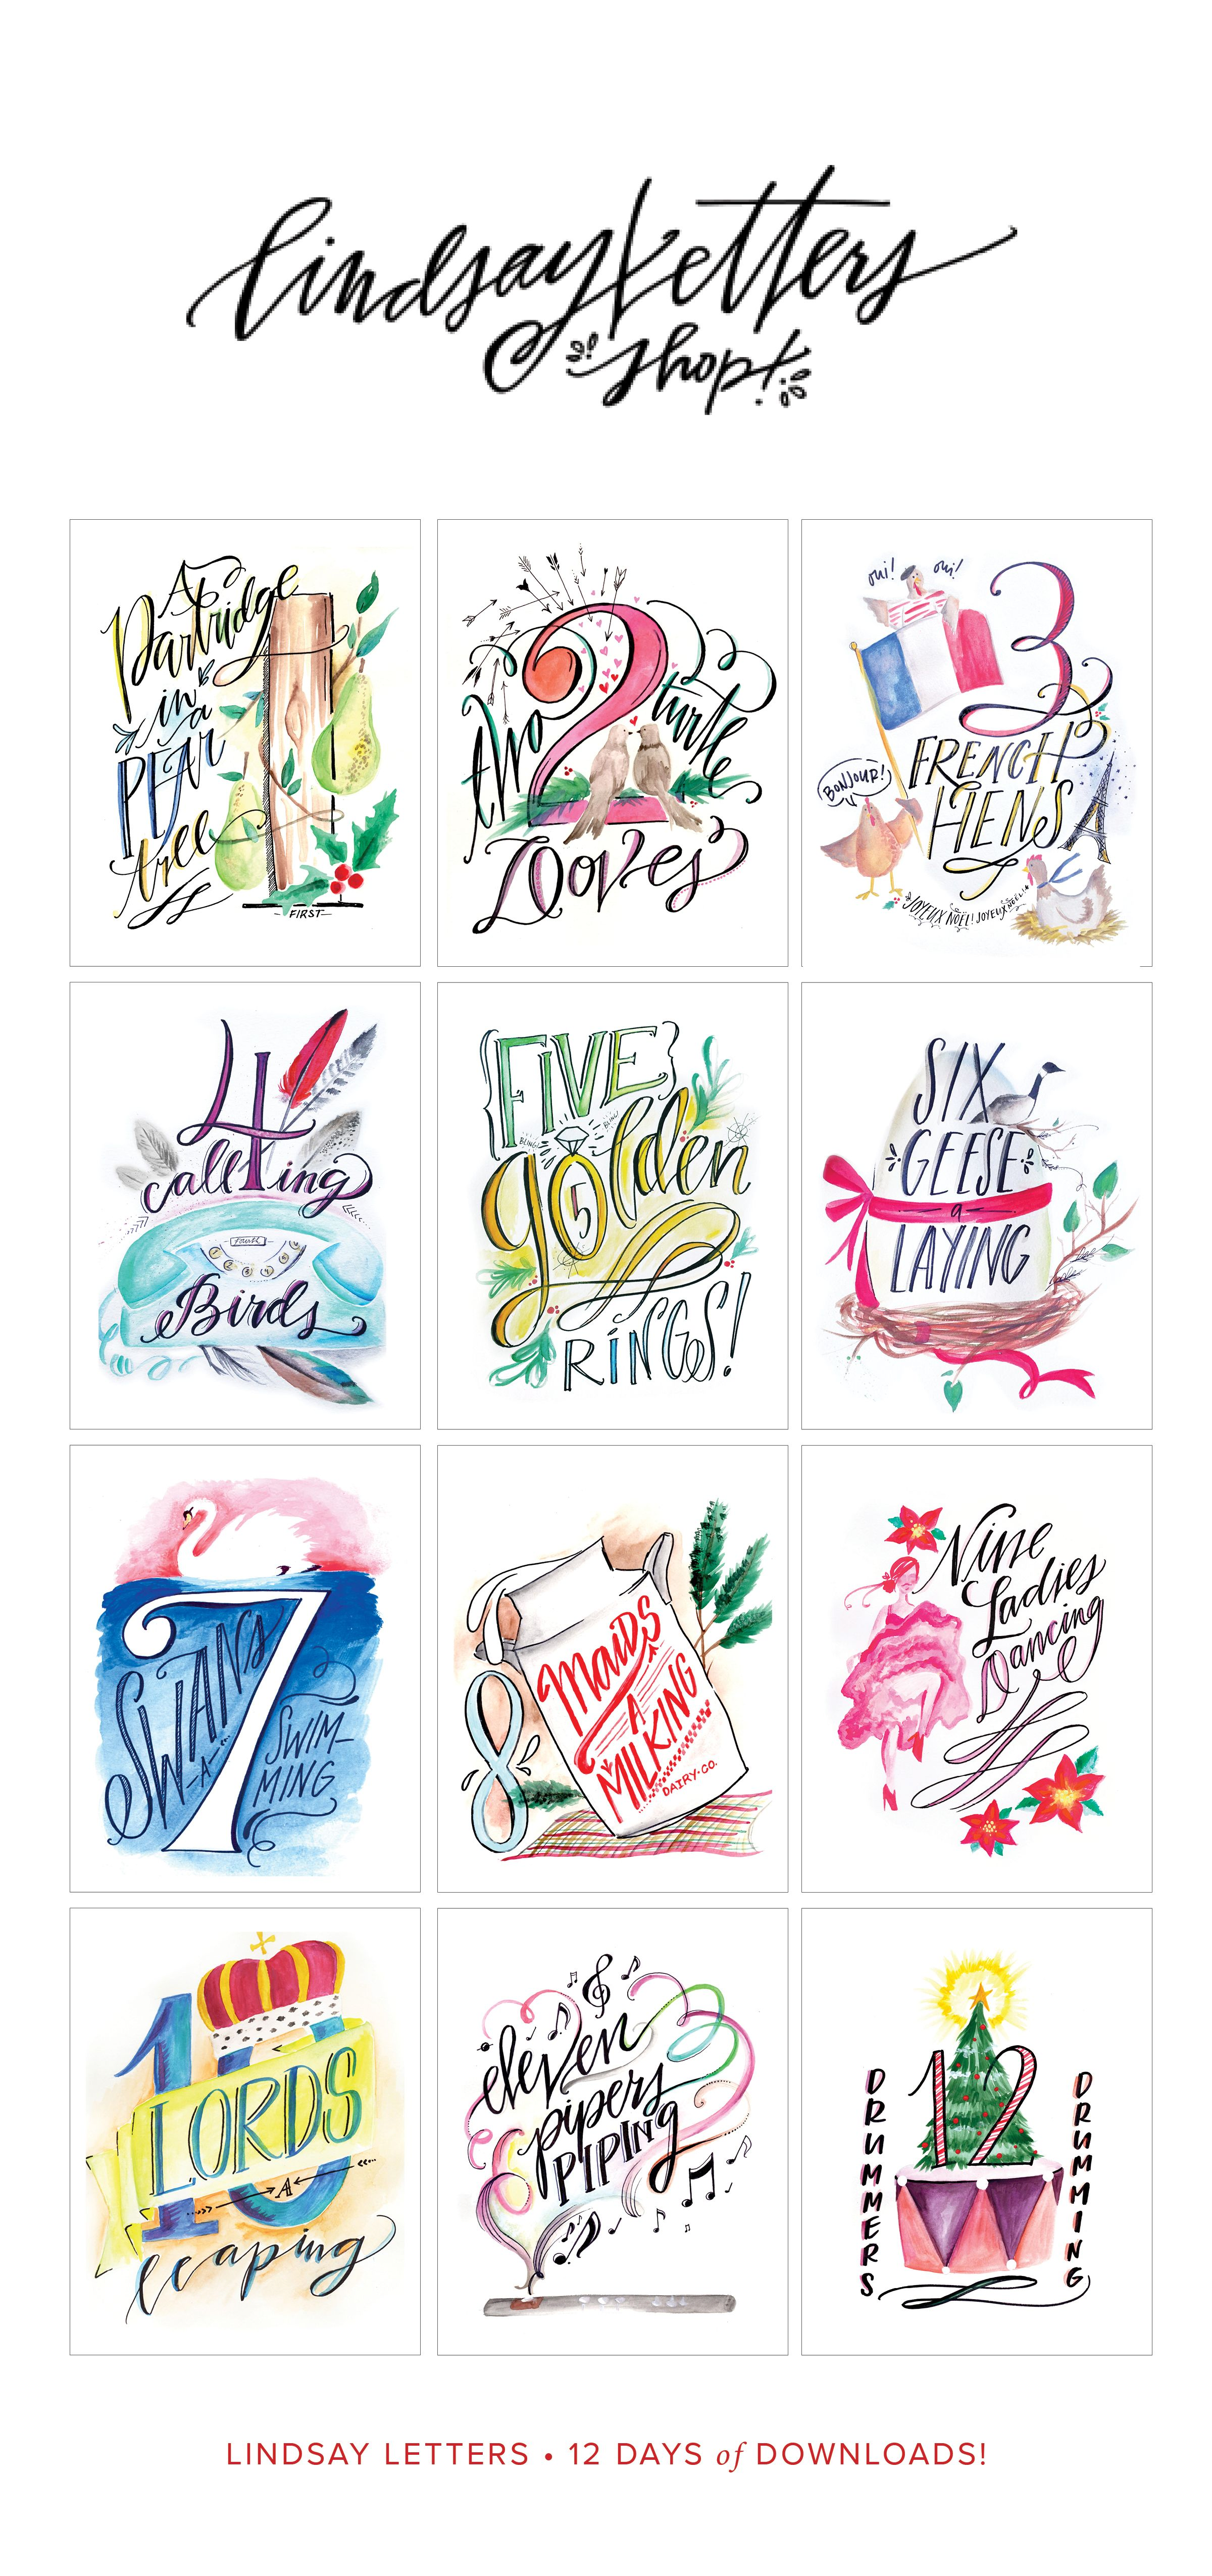 photograph about 12 Days of Christmas Images Printable titled Lindsay Letters 12 Times of Xmas Printables! retail store